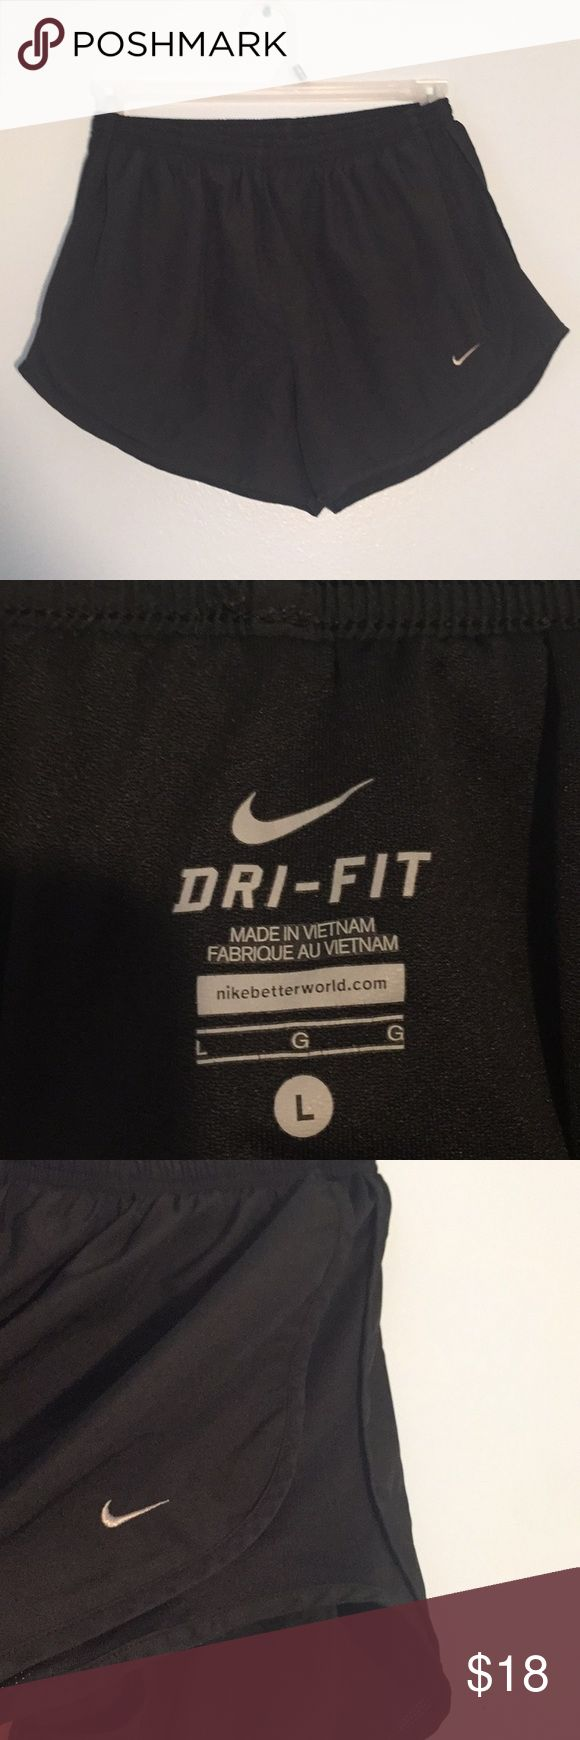 Women's Black Nike Dri-fit Shorts These shorts were hardly worn and are in excellent condition! They are elastic with drawstring so they can be held in place. There is built in underwear so you don't have to worry about flashing anyone on leg day. I don't trade but feel free to make me an offer! Nike Shorts